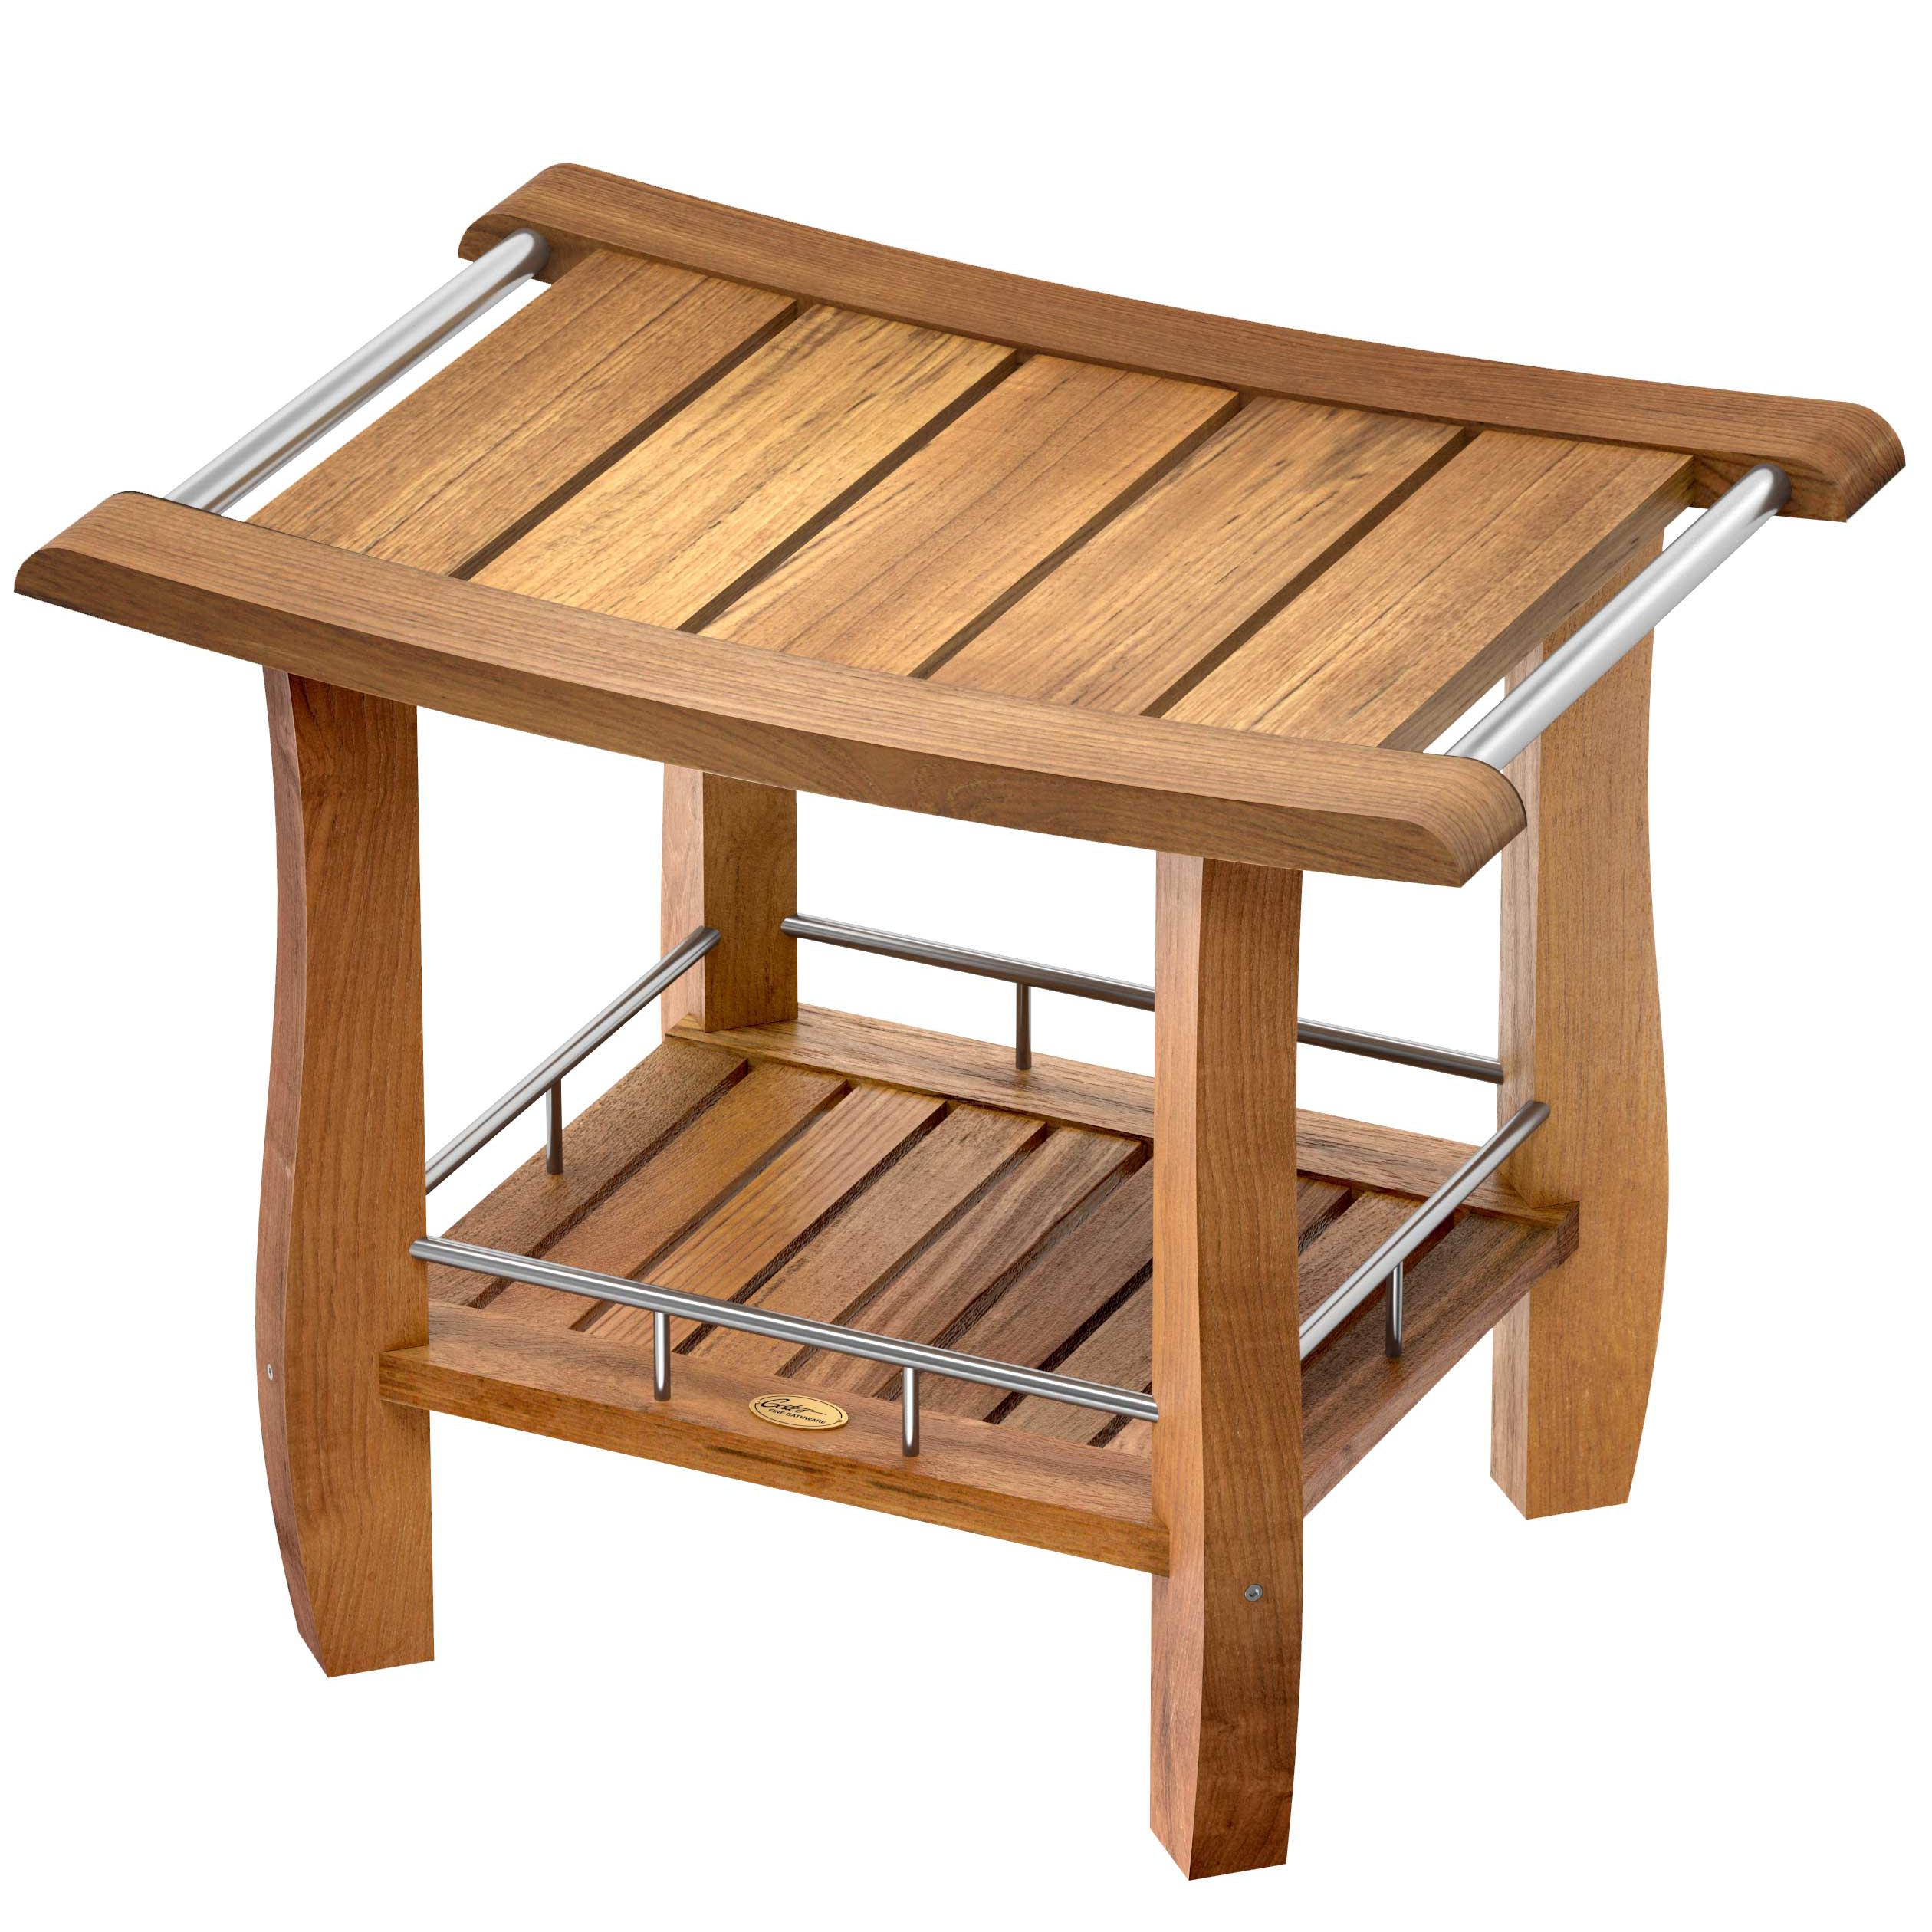 bath within cheap corner bathrooms teak for stool shower find a benches decorative bench